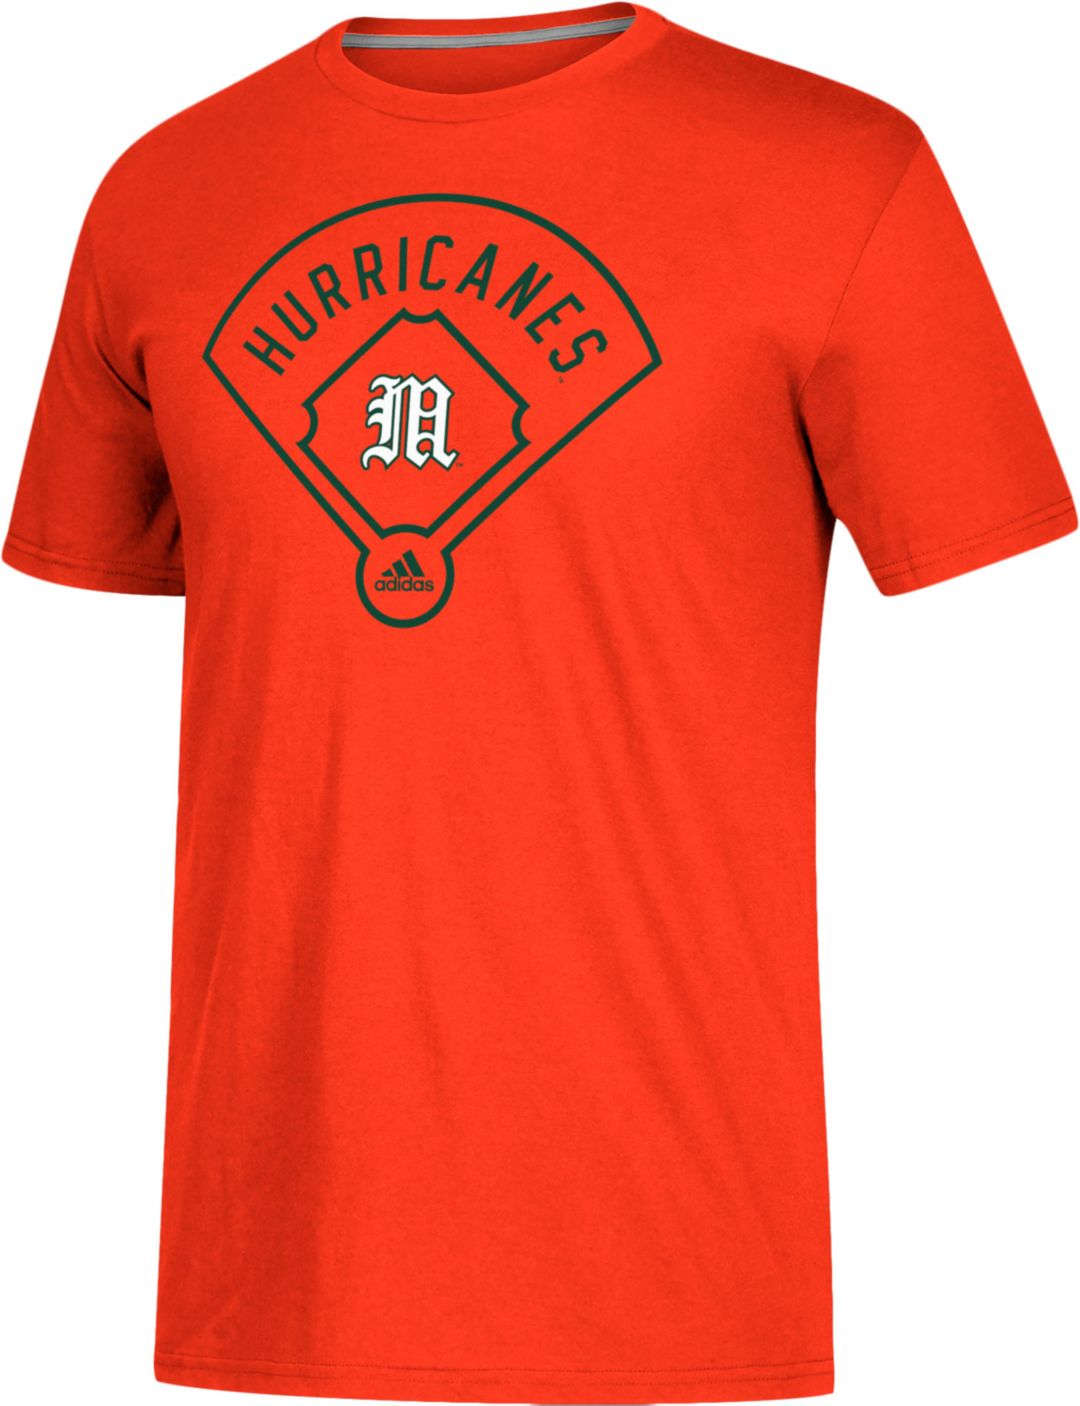 35a404fb adidas Men's Miami Hurricanes Orange 'Around The Horn' Go-To Performance  Baseball T-Shirt